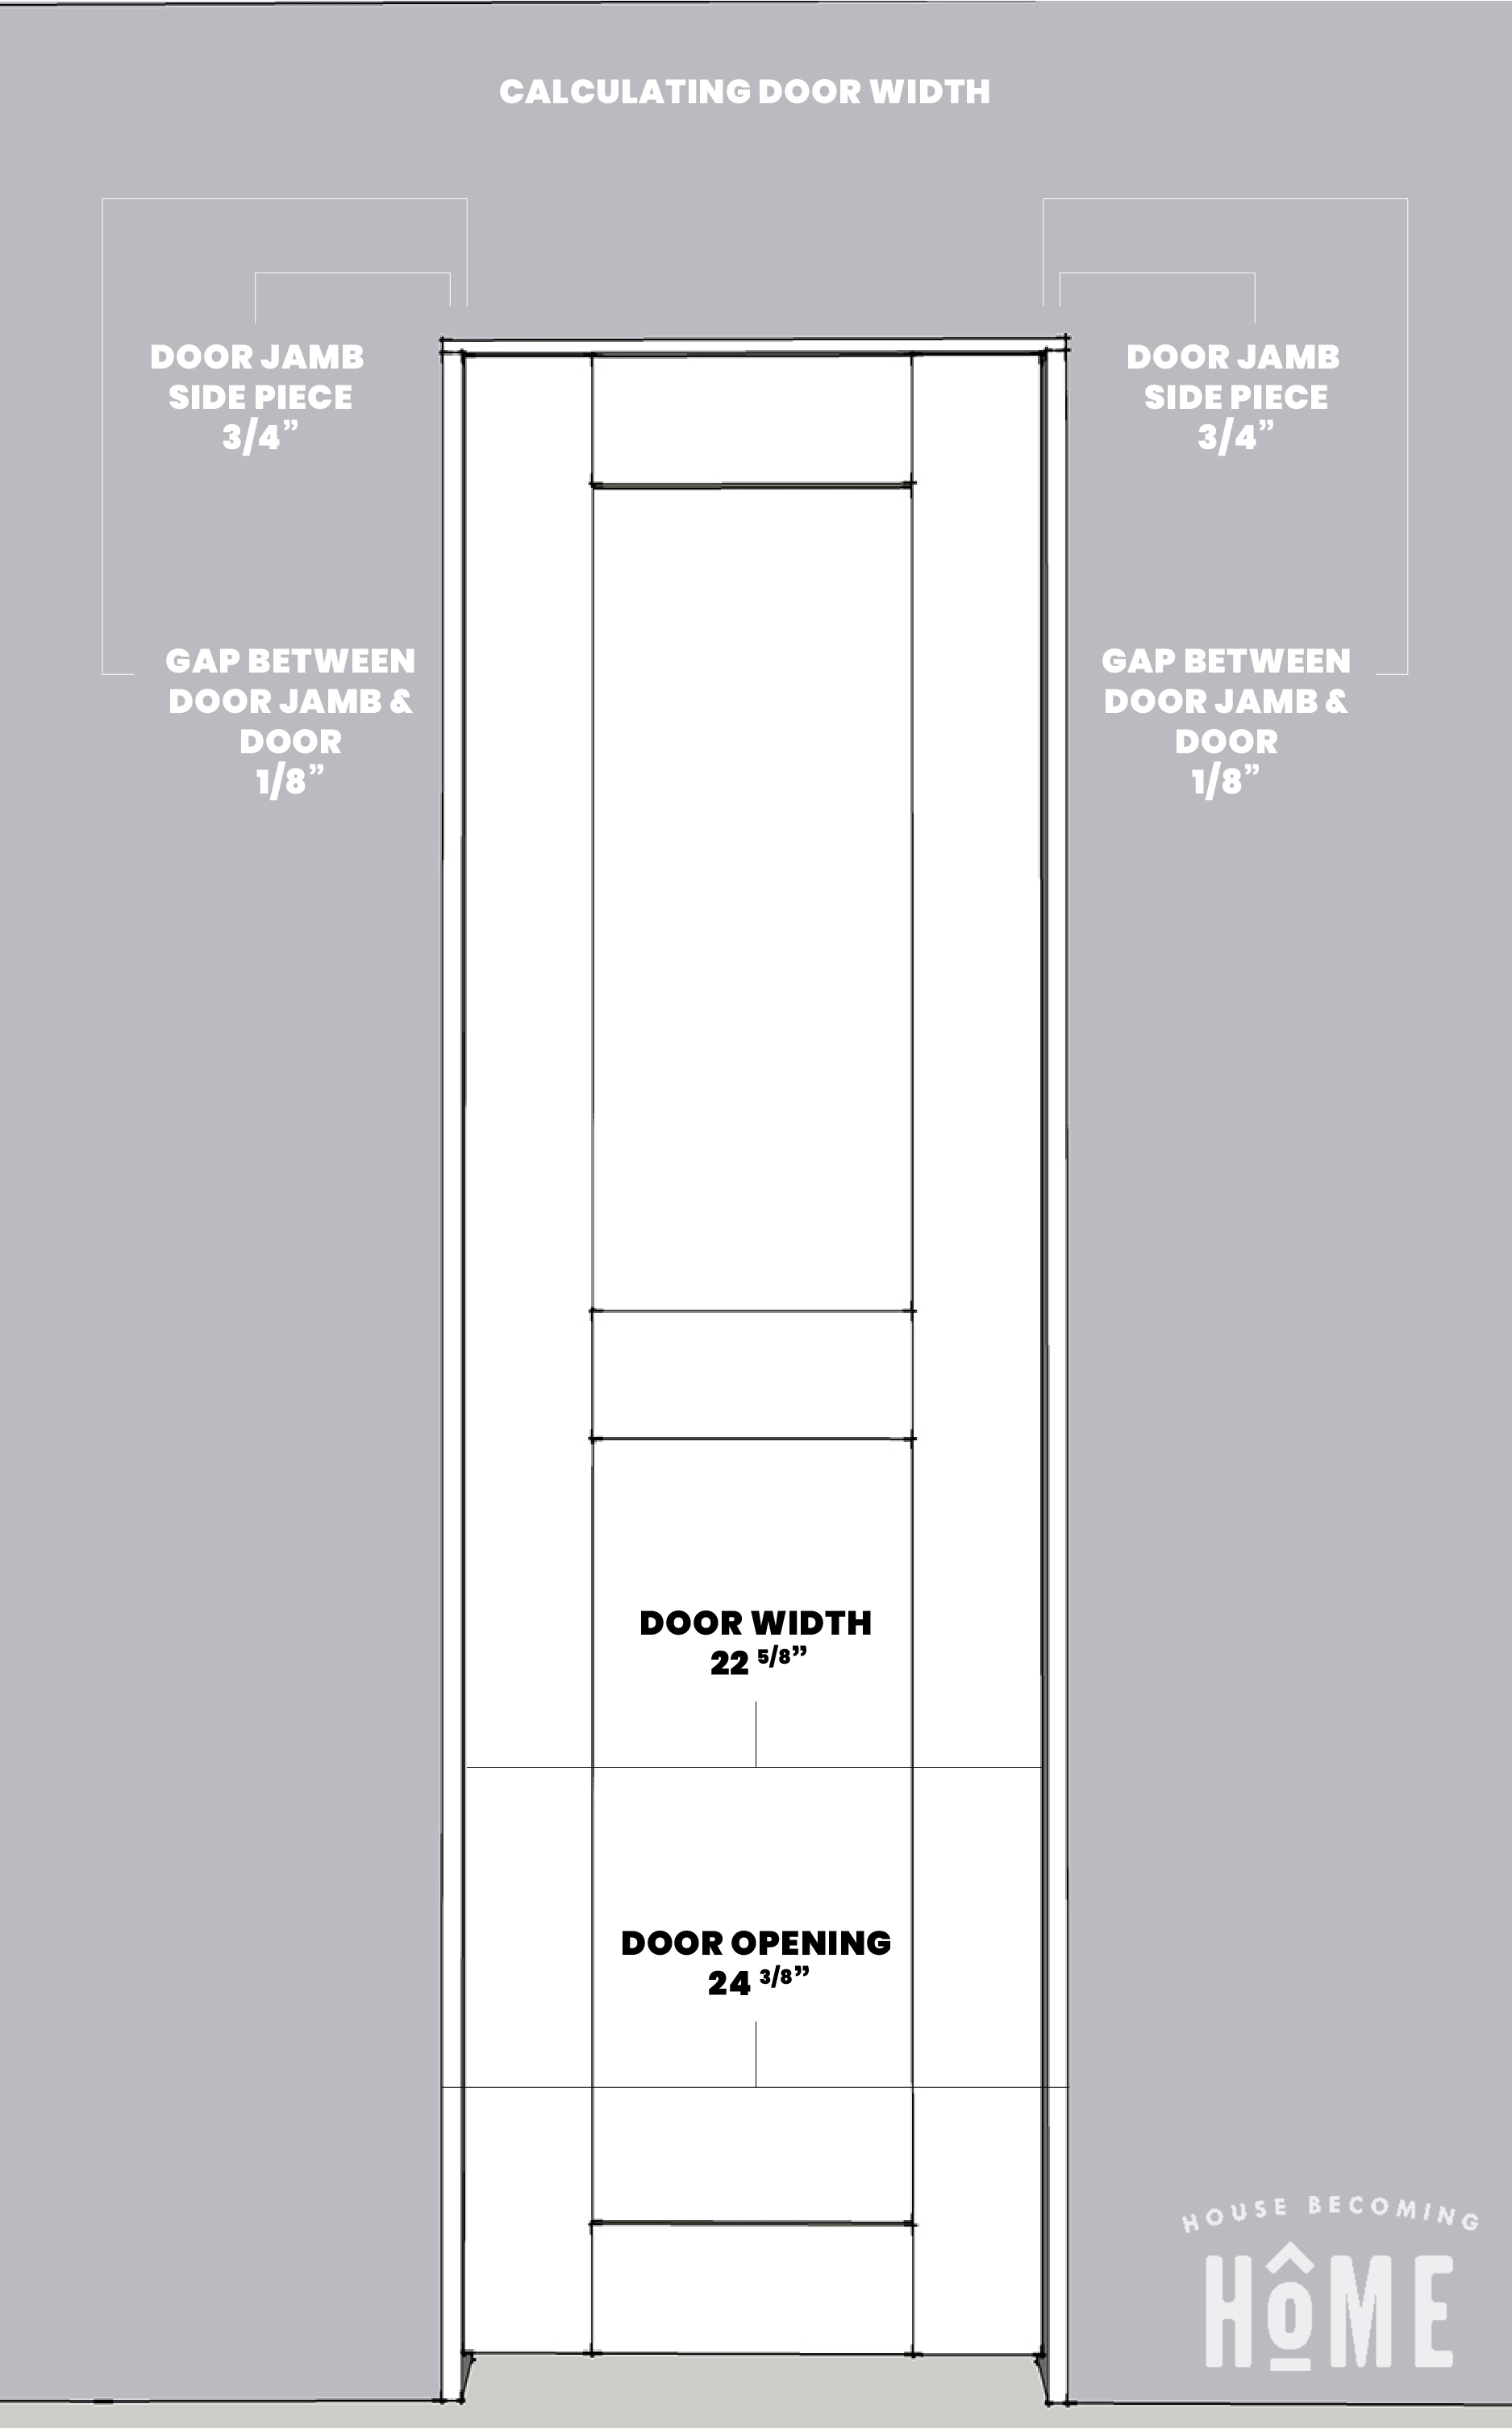 Diagram of DIY shaker style door with measurements